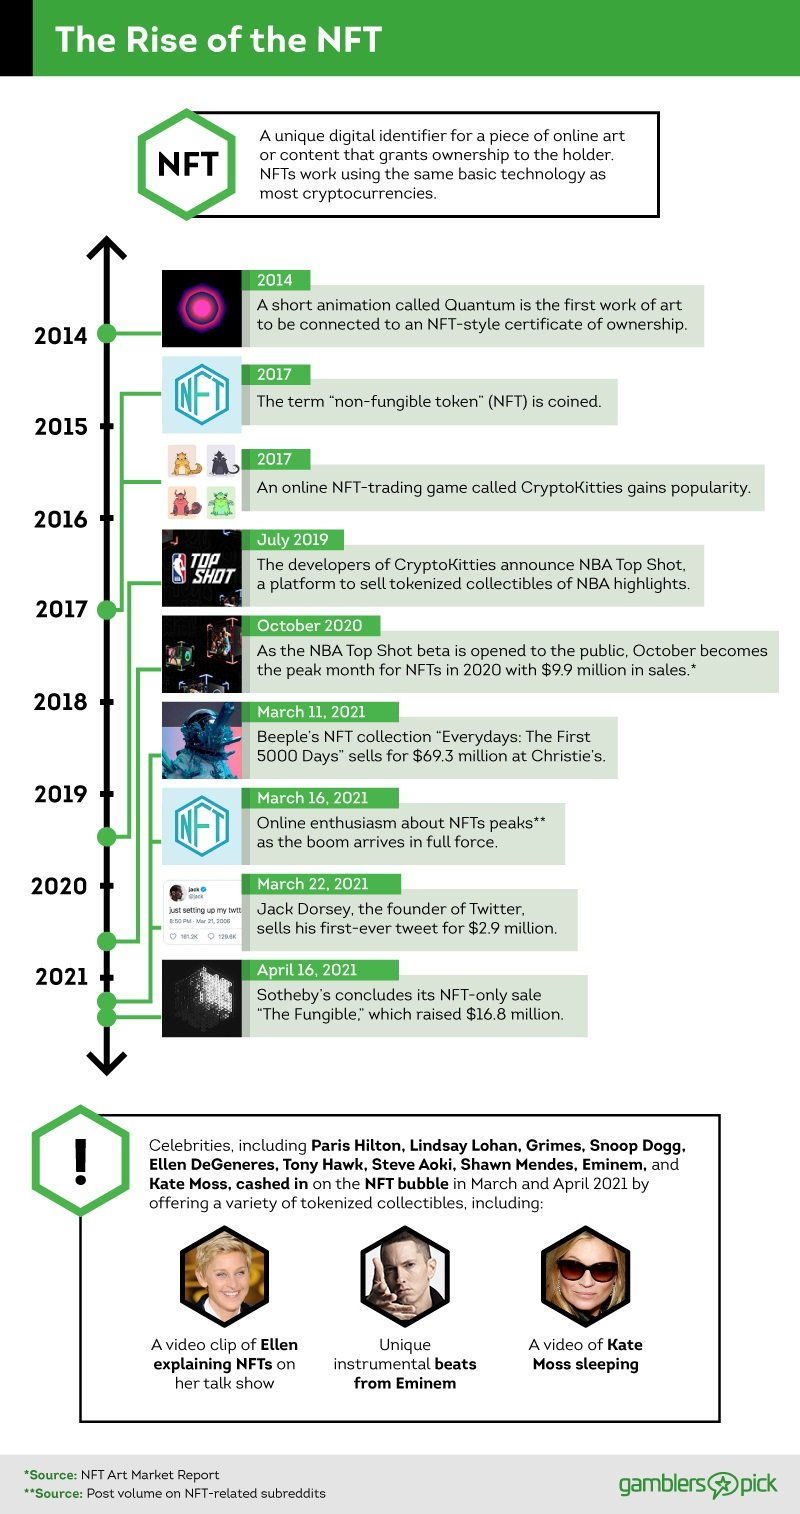 Timeline of the growth of NFT popularity from 2014 to 2021